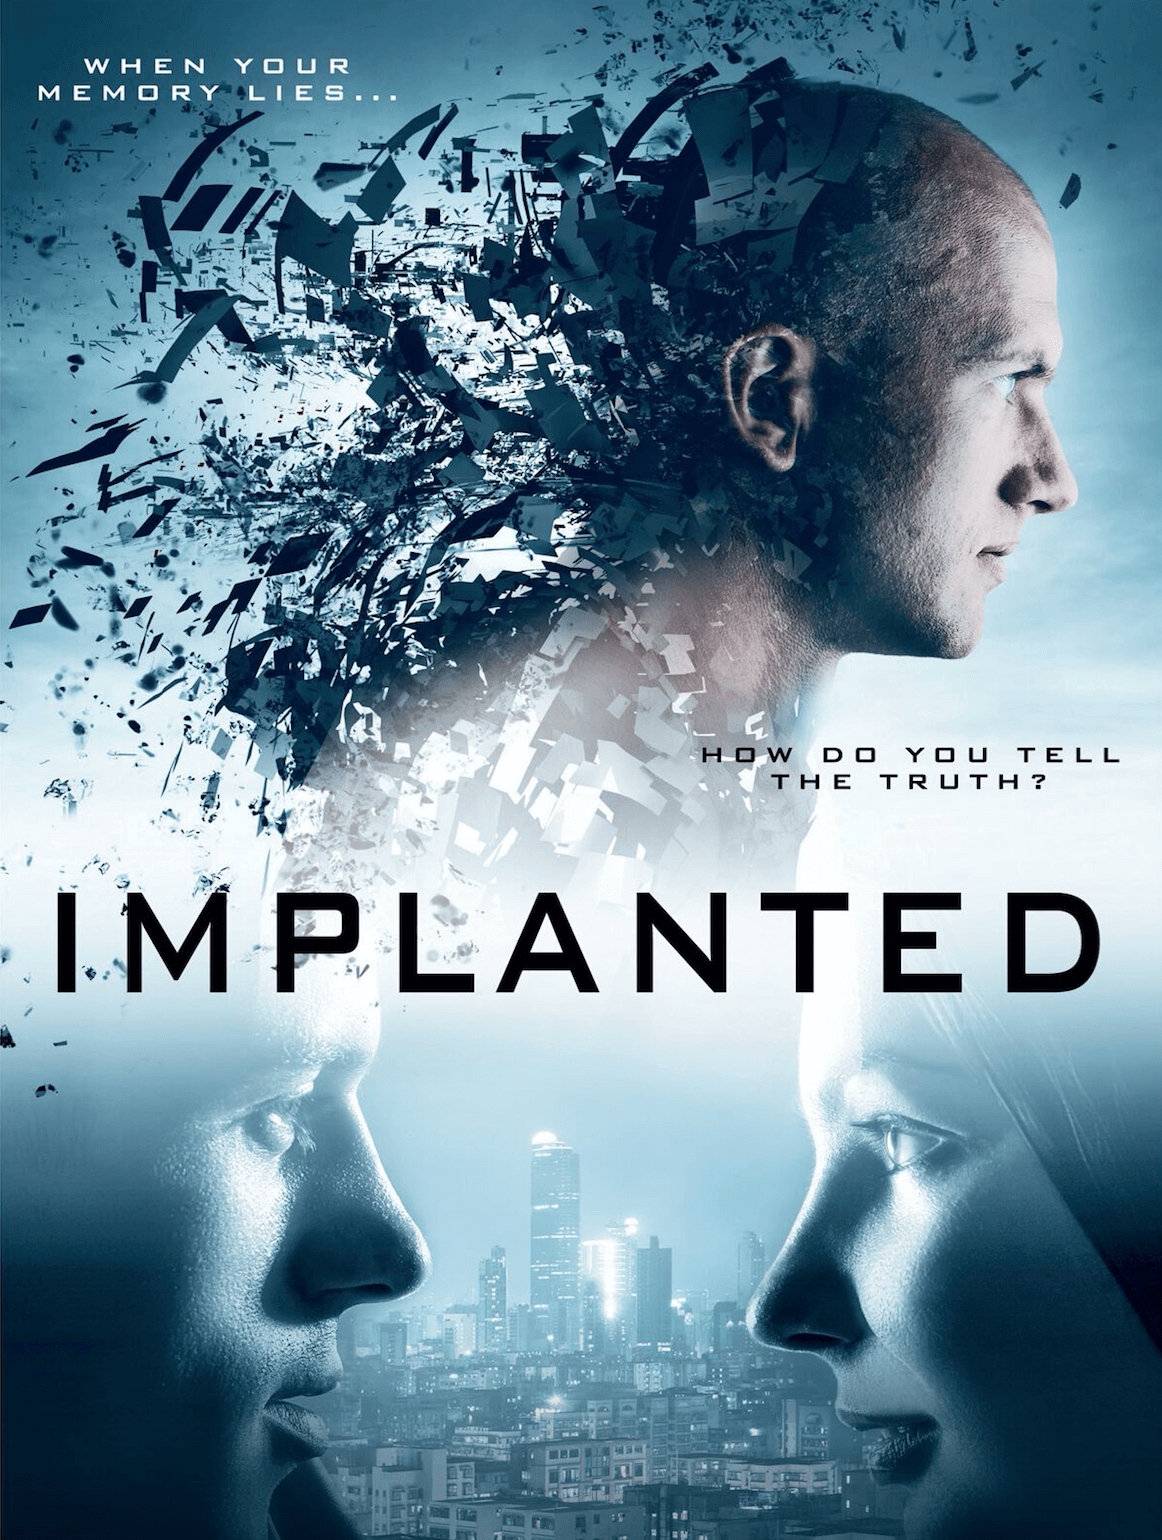 Implanted Artwork FILMOGRAPHY